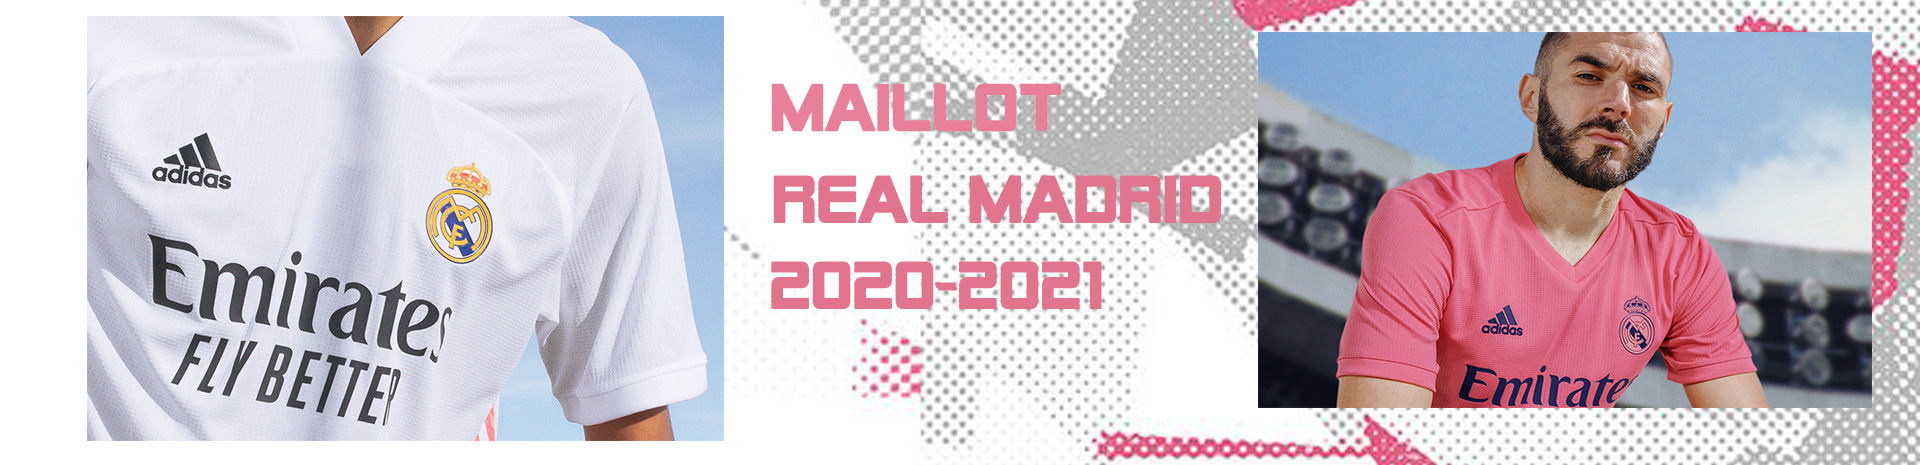 Maillot real madrid 2020/21